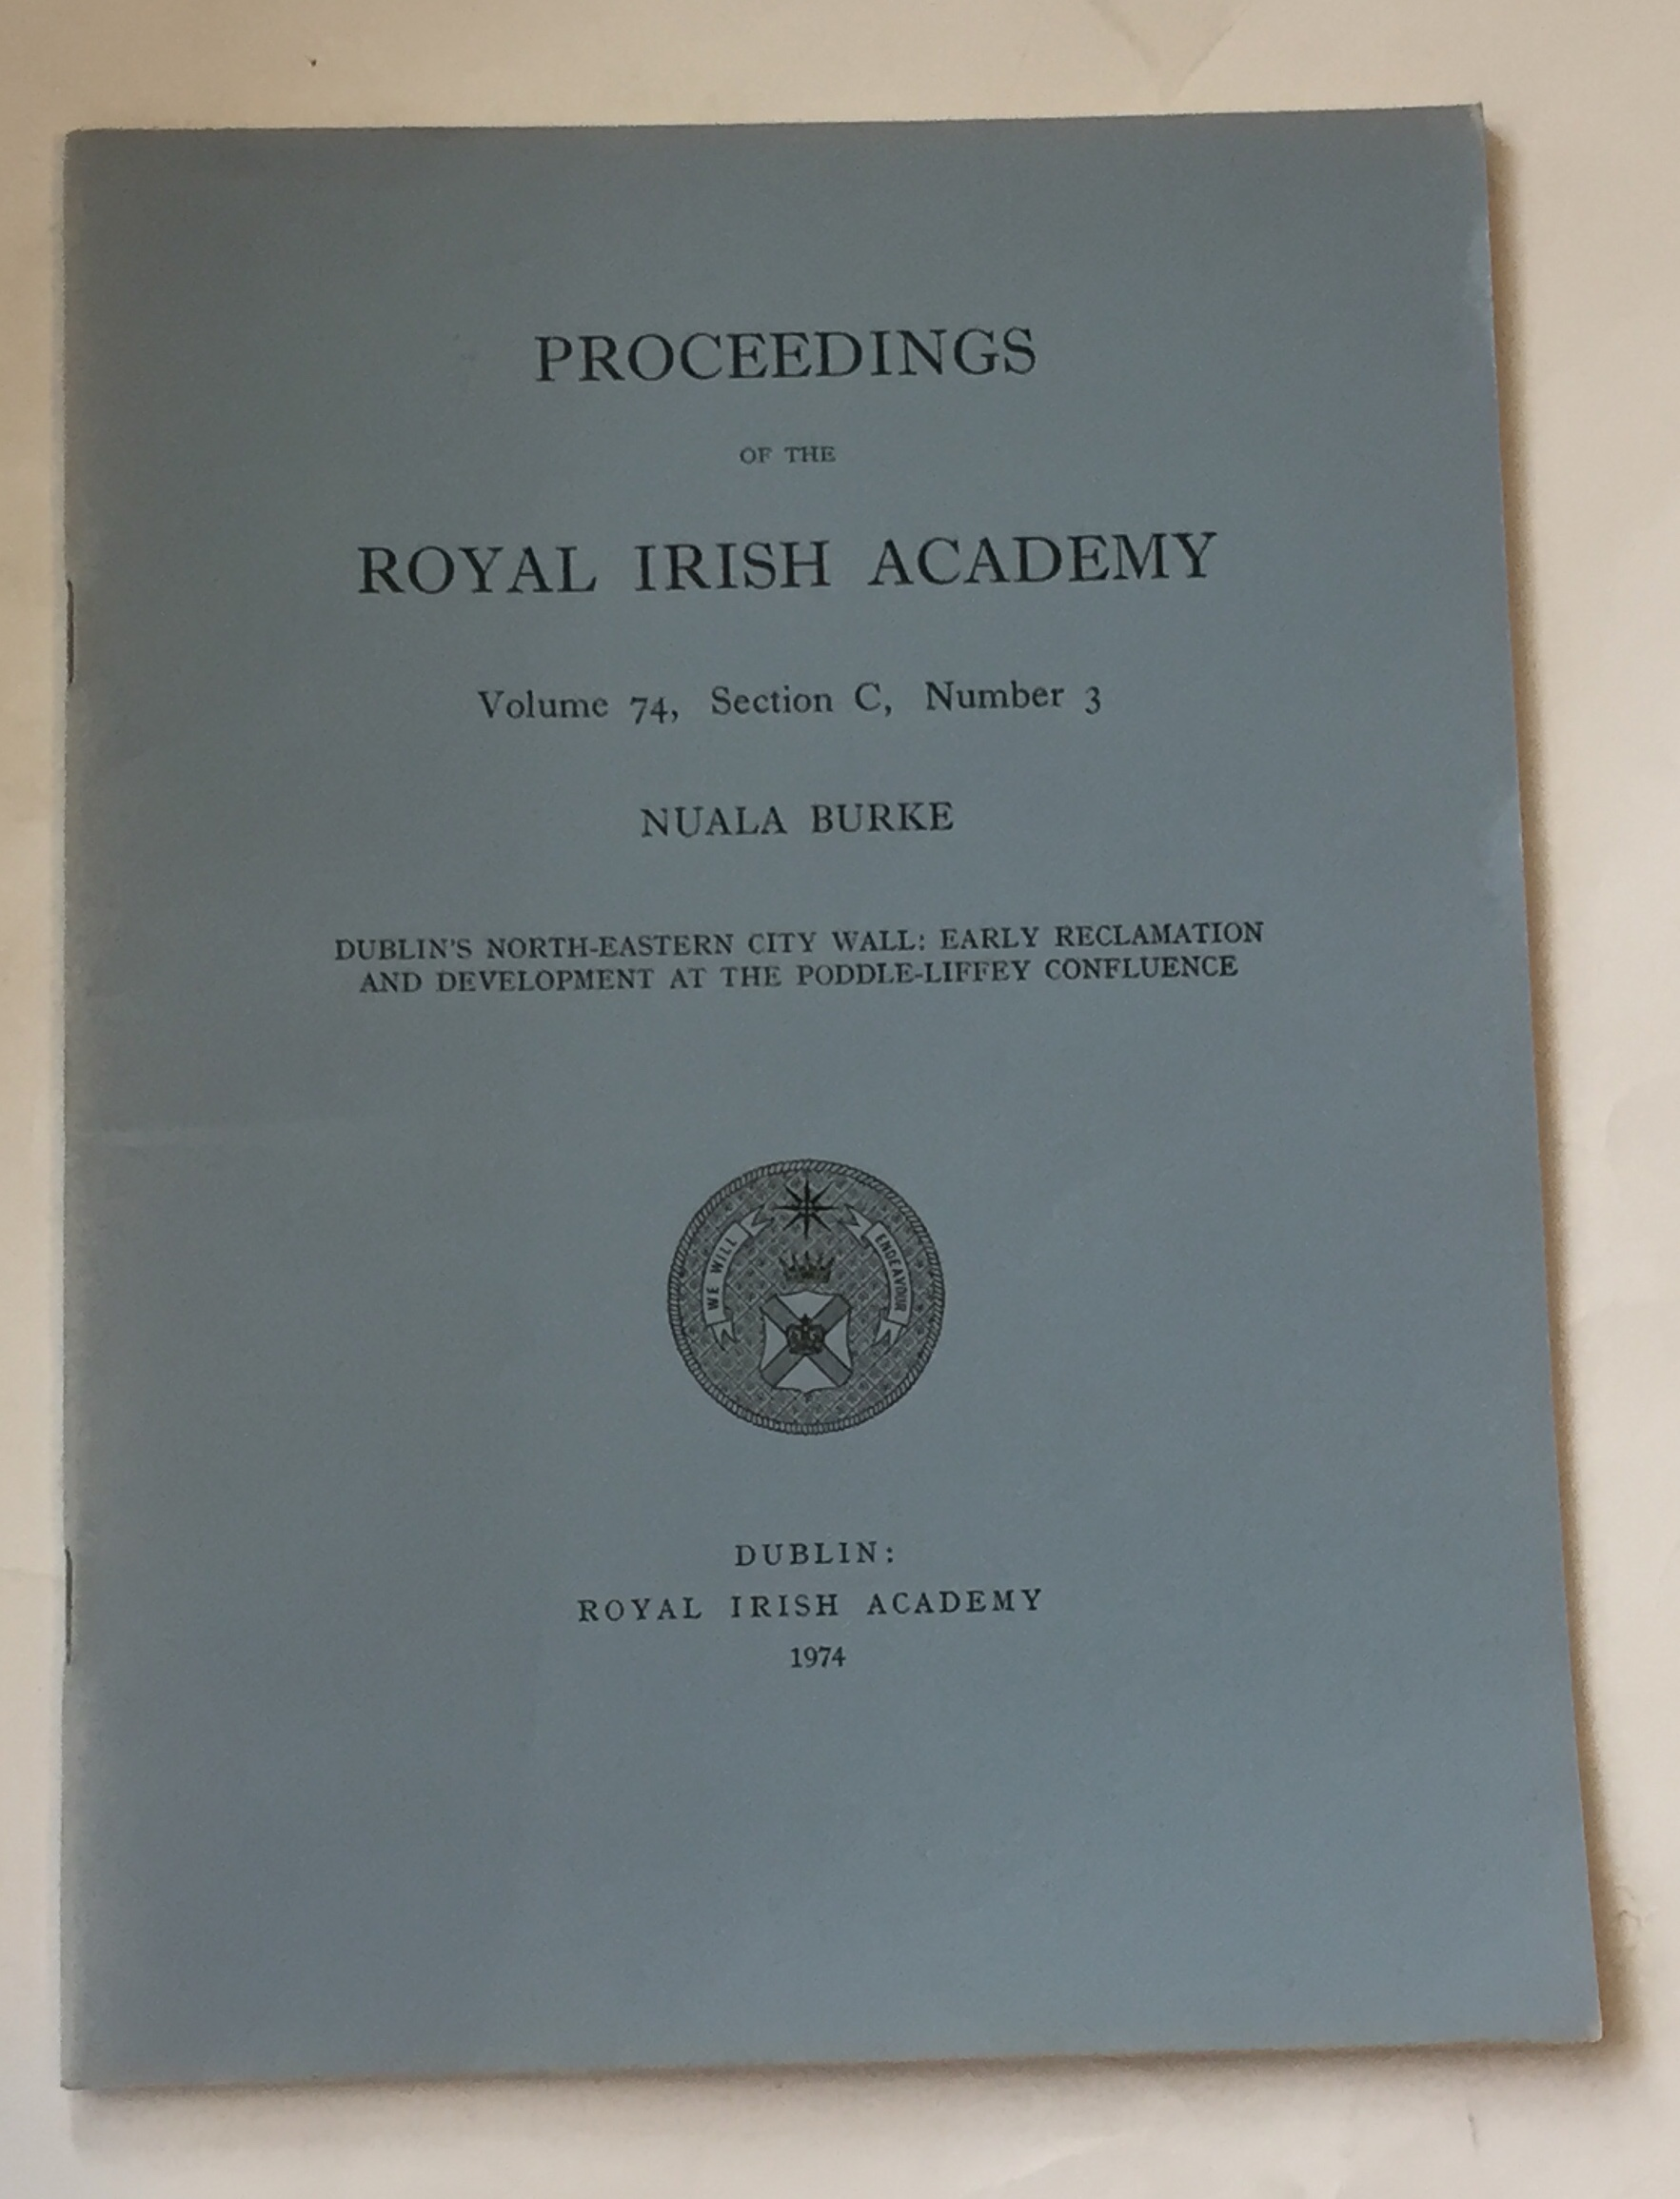 Image for Dublin's North-Eastern city wall: Early reclamation and develpoment at the poddle-liffey confluence :Proceedings of the Royal Irish Academy, Volume 74, Section C, No. 3